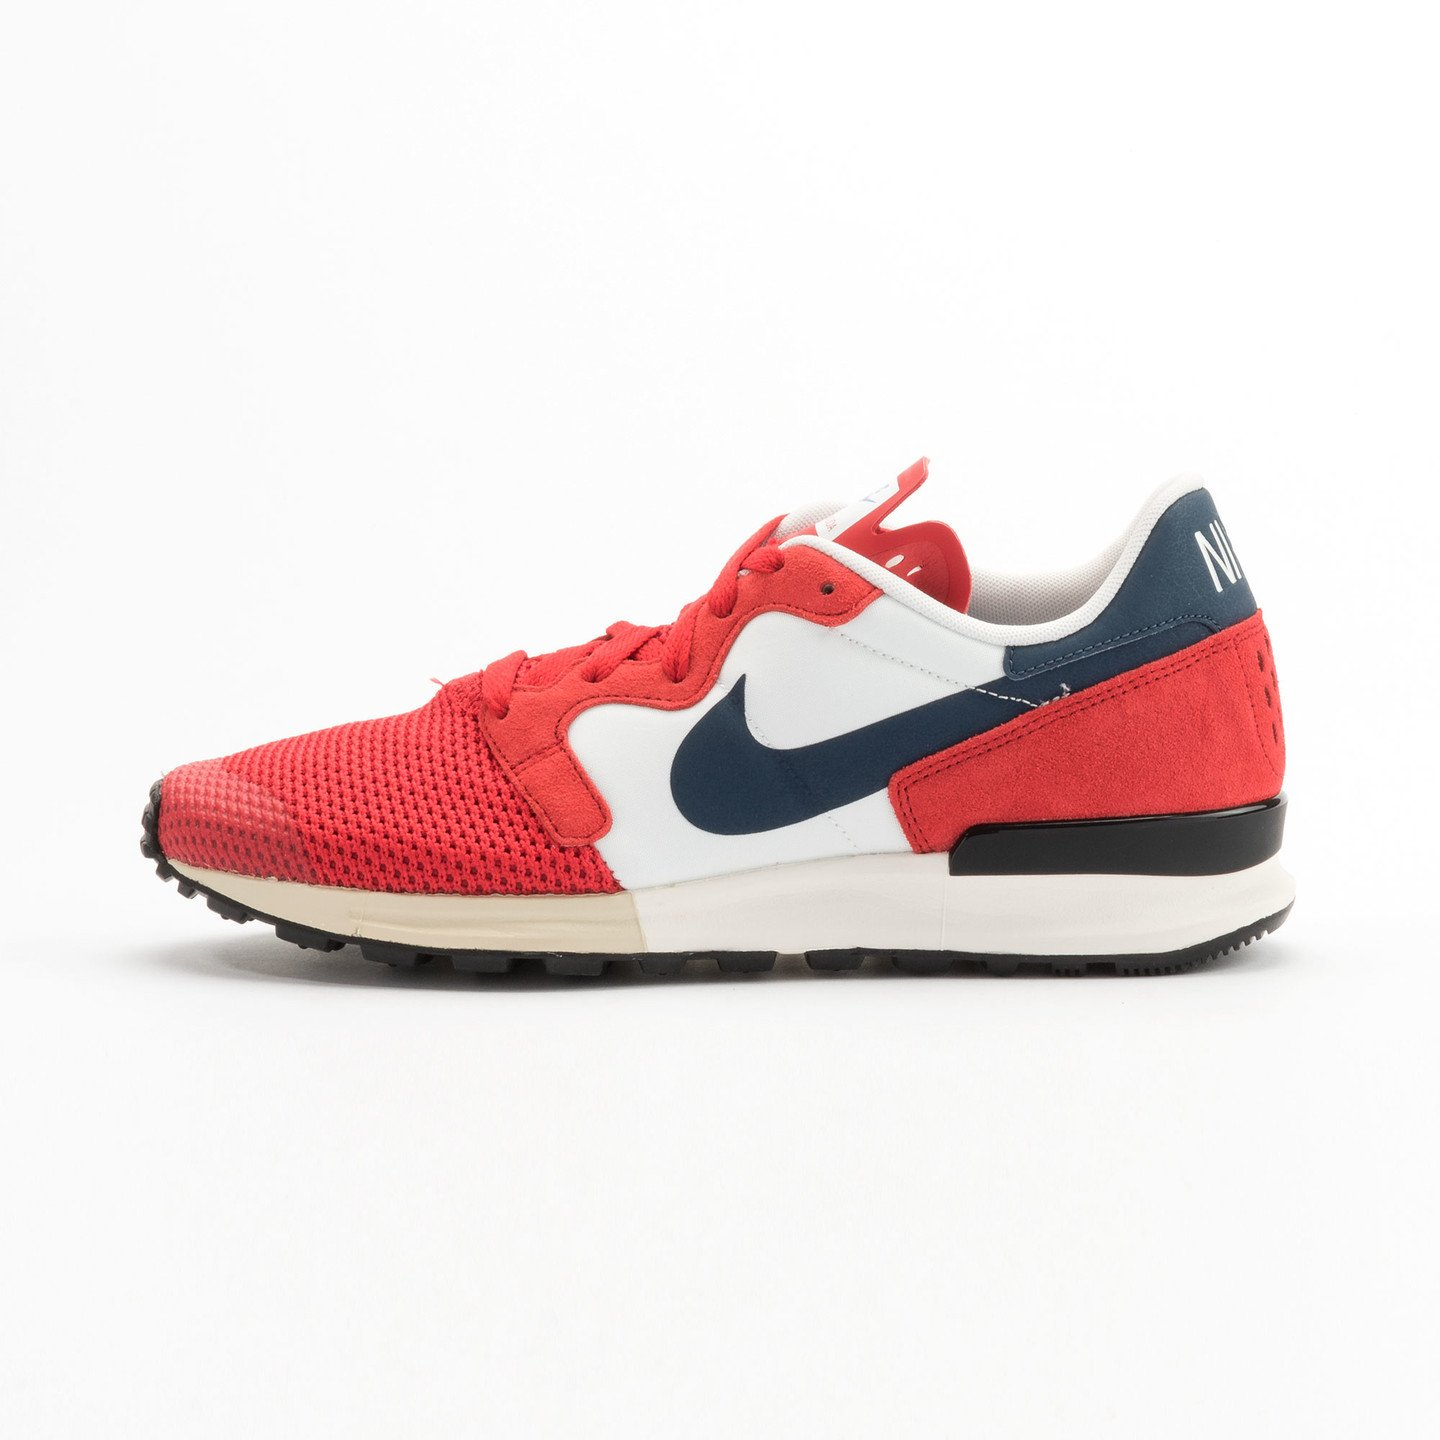 Nike Air Berwuda University Red / Squadron Blue / Summit White 555305-601-44